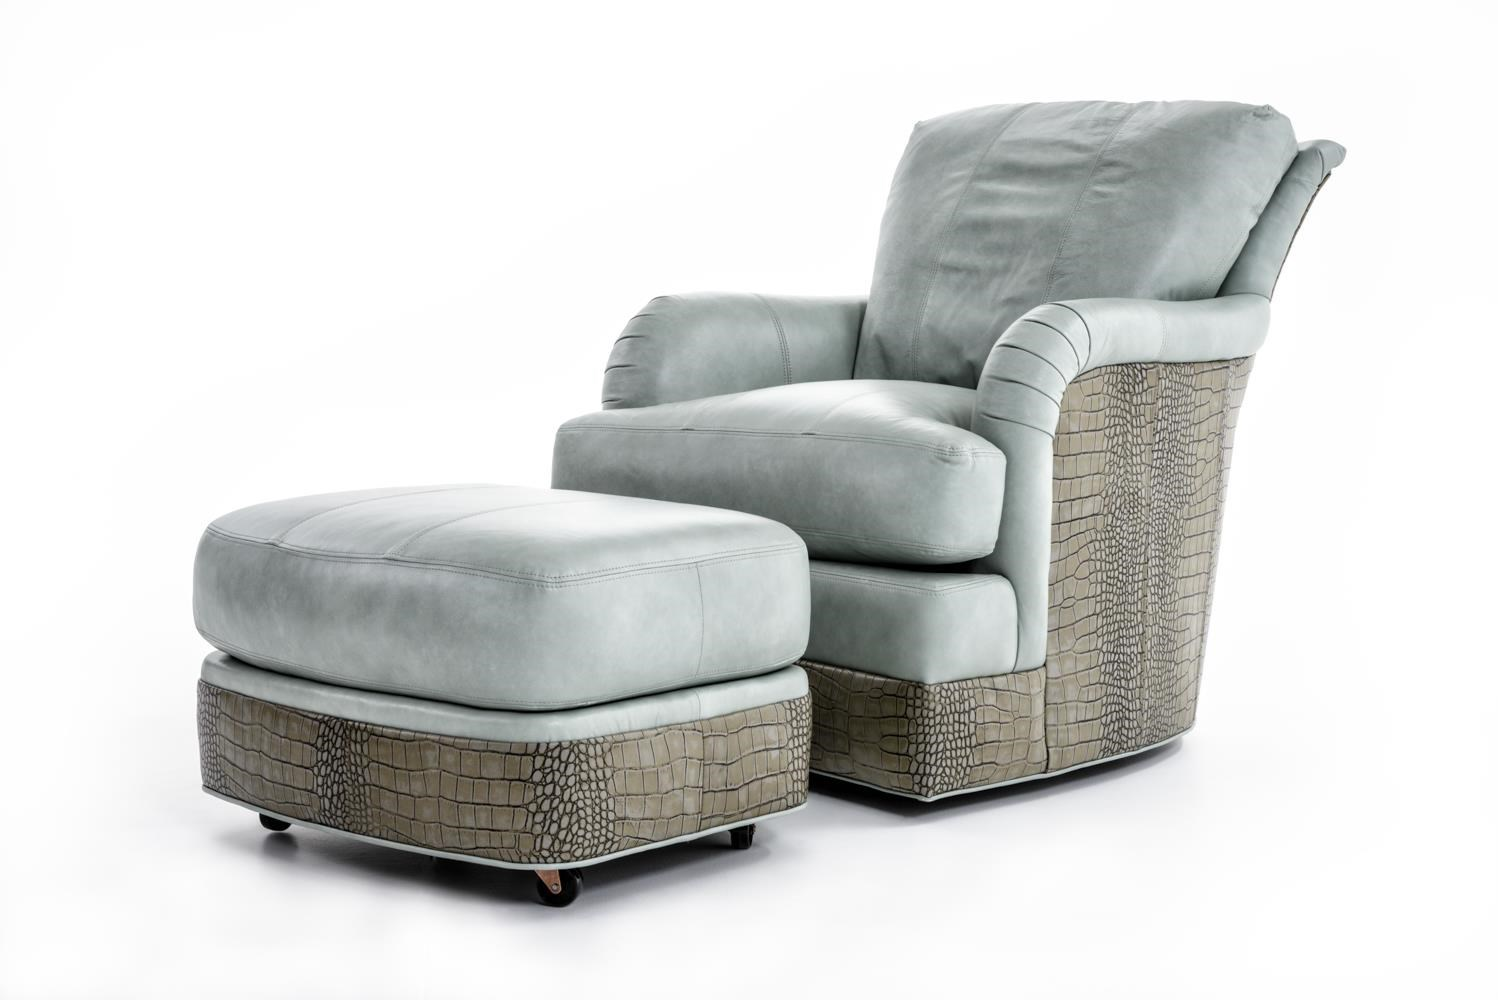 Sherrill SW1997 Swivel Chair and Ottoman Set - Item Number: SW1997-01+1997-00  CORINTRIAN AQUA